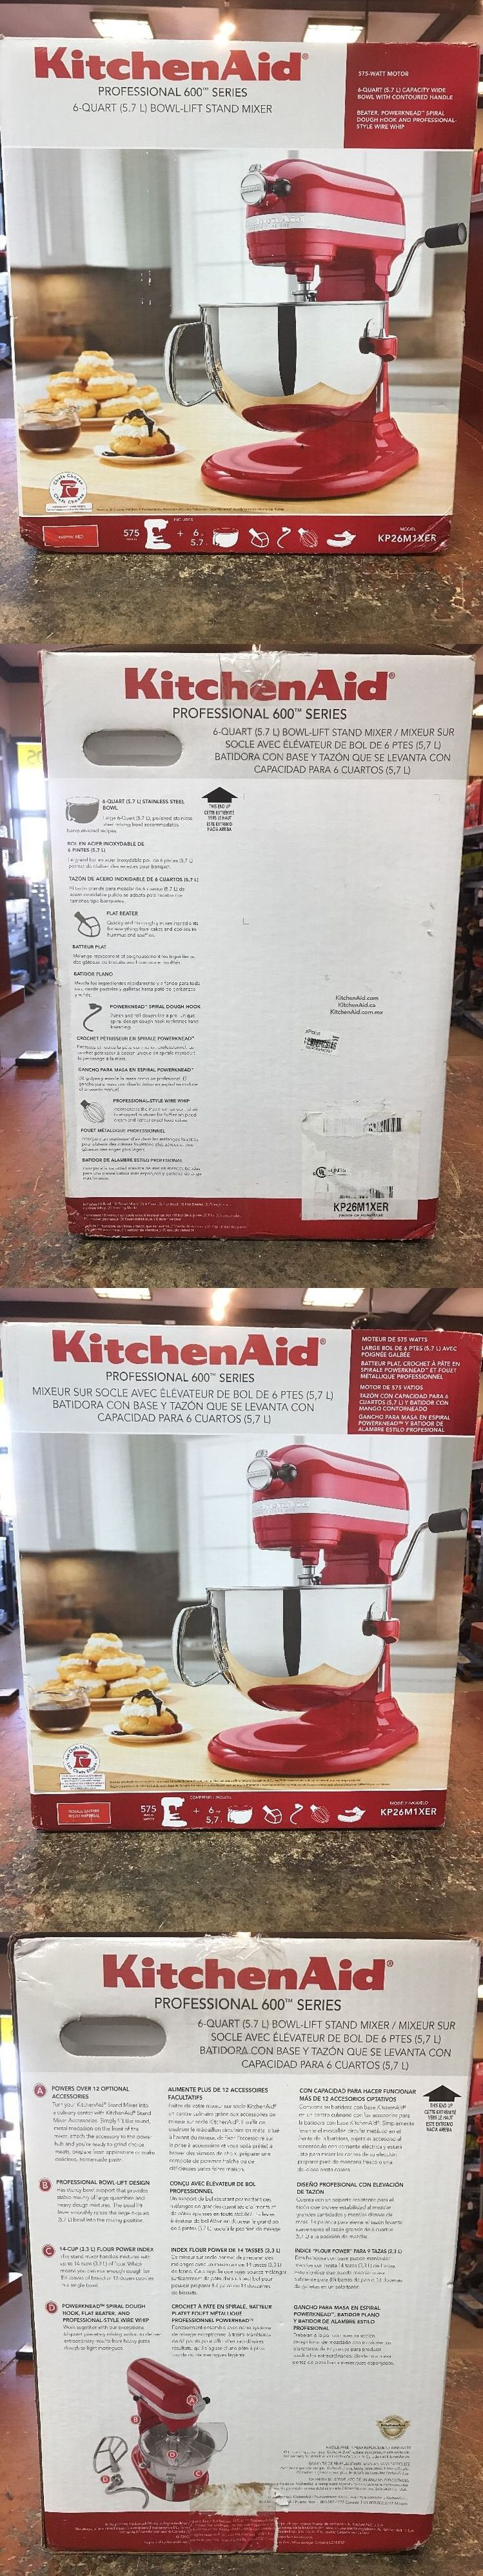 Mixers Countertop 133701: New Kitchenaid Pro 600 6Qt Professional Stand Mixer Kitchen Aid Kp26m1xer -> BUY IT NOW ONLY: $299.95 on eBay!